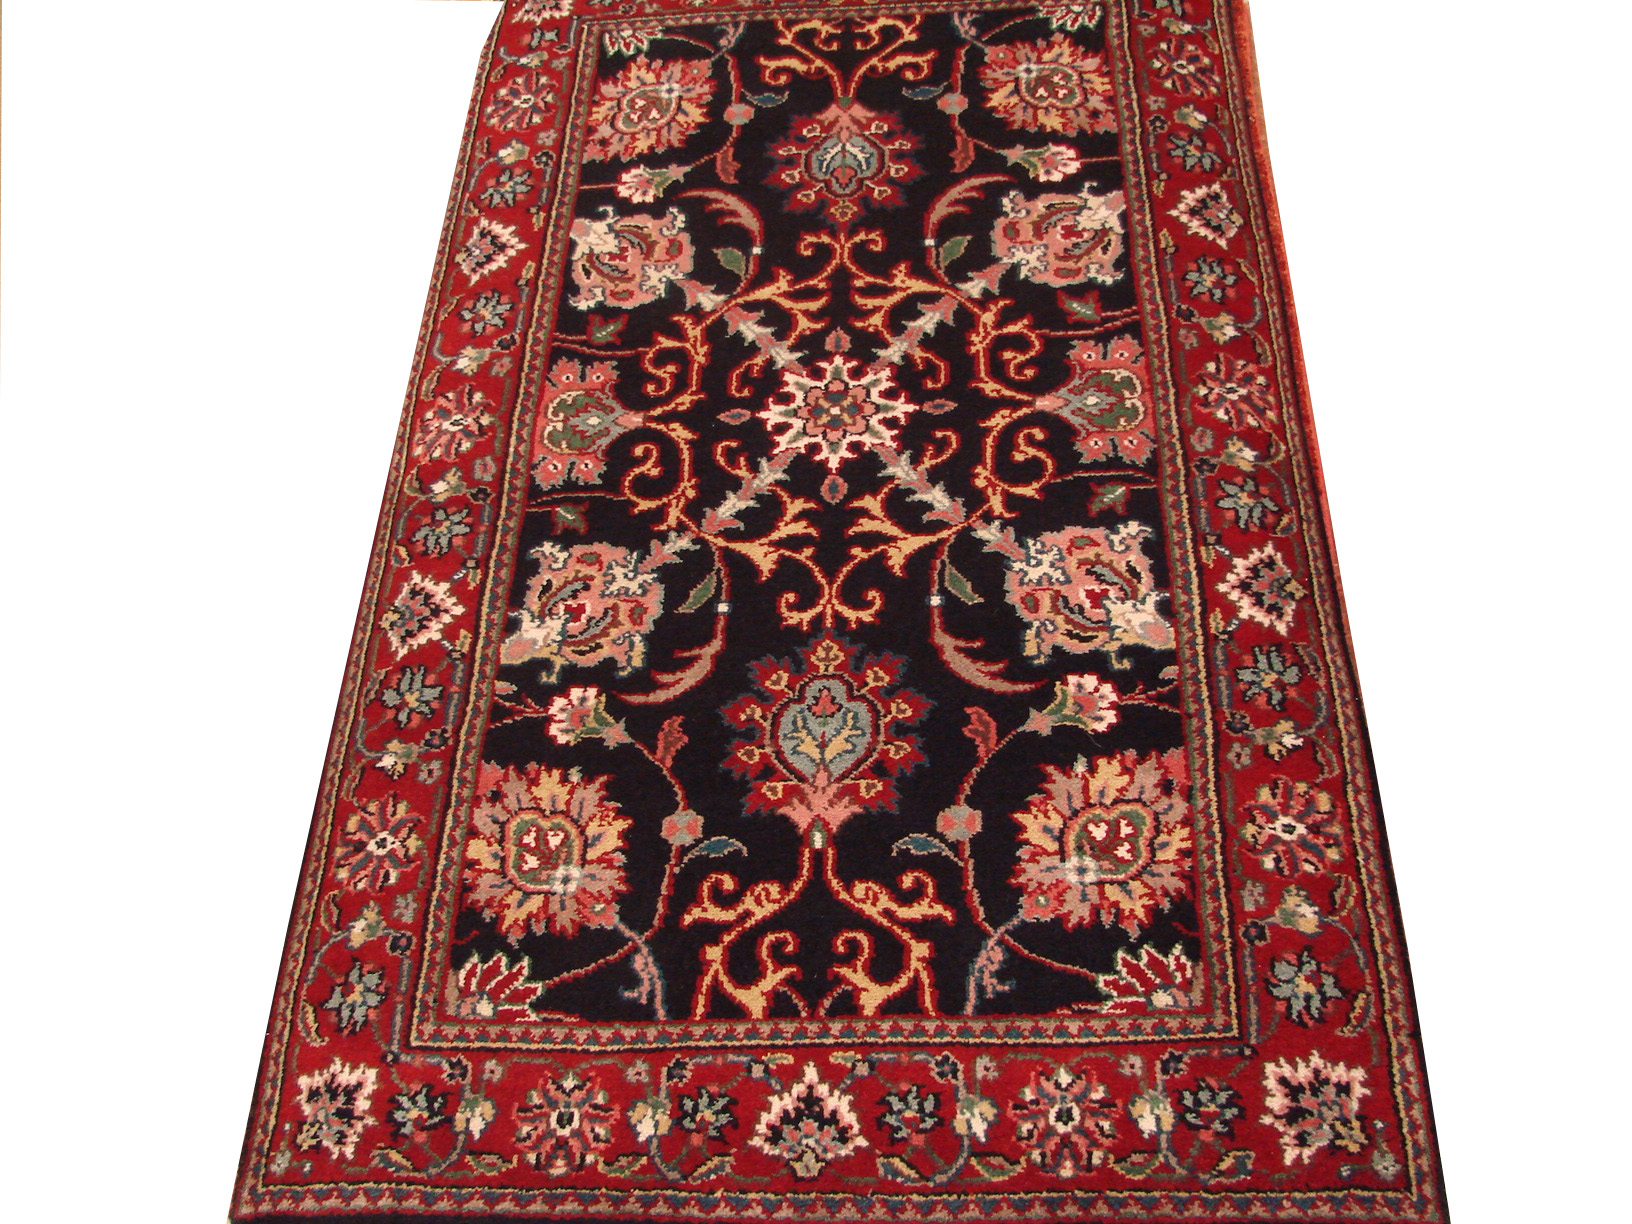 2X4 Traditional Hand Knotted Wool Area Rug - MR0680